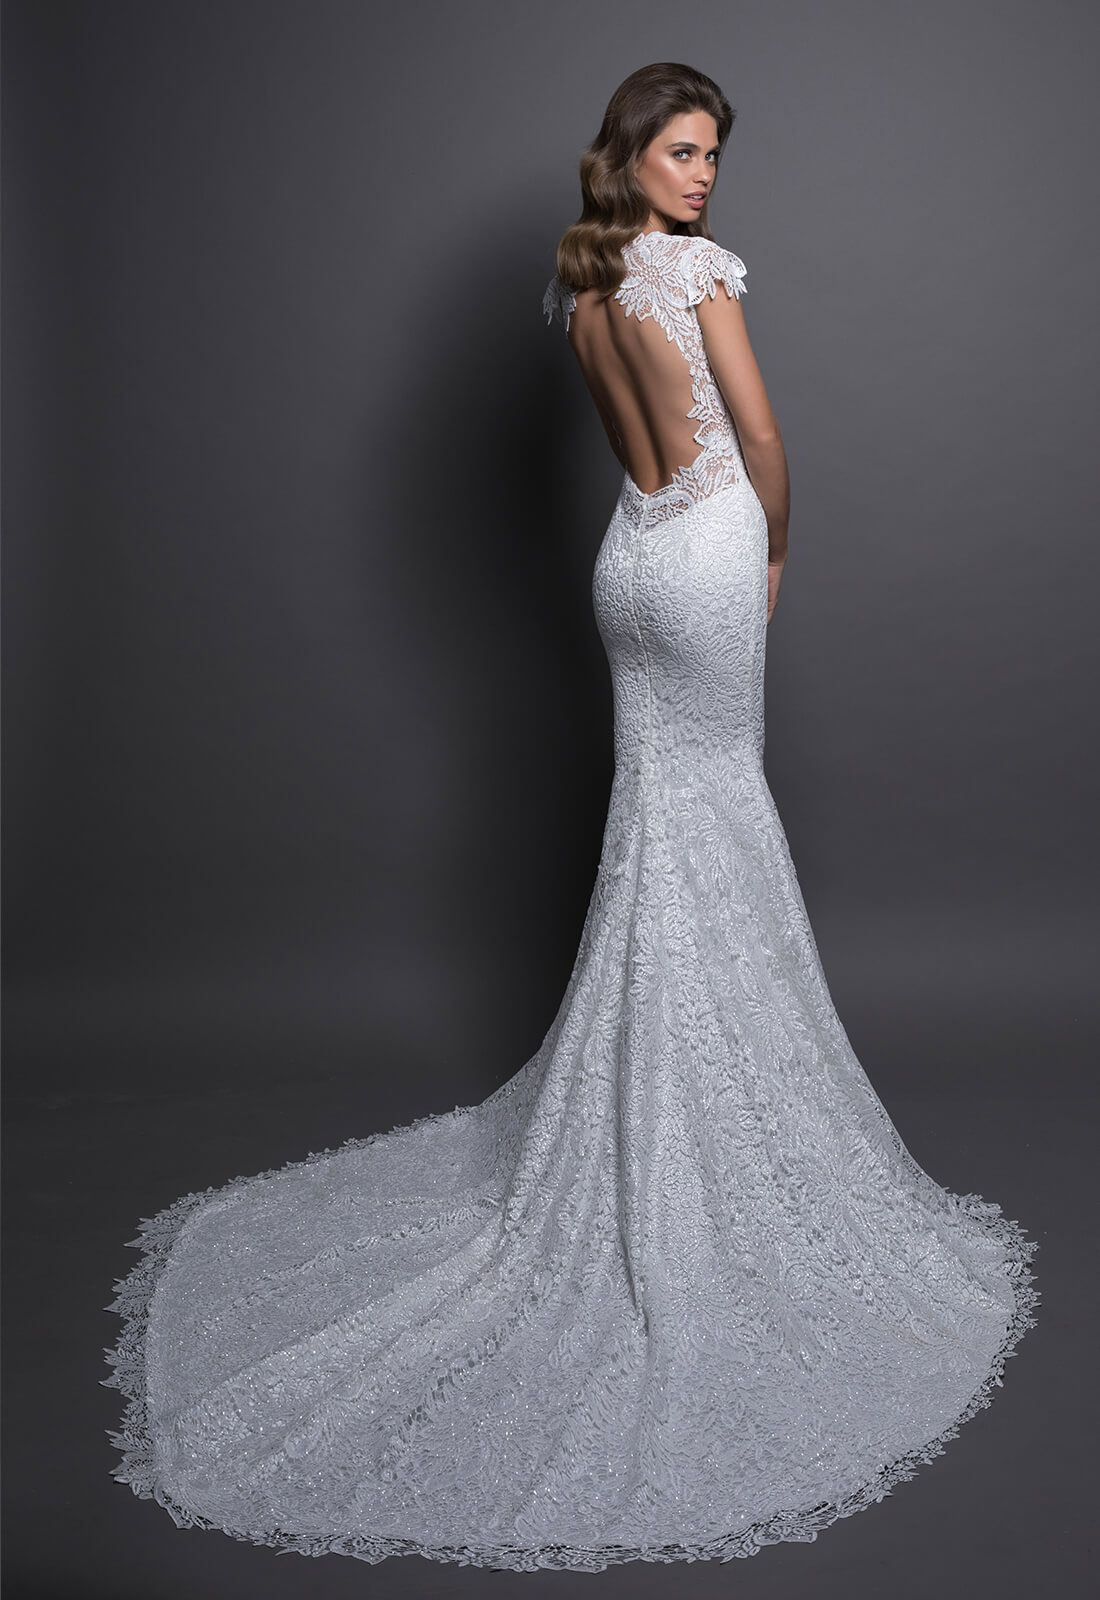 aaf1aa23d2a7 Pnina Tornai STYLE NO. 14586 | Wedding gowns lace mermaid | Wedding ...